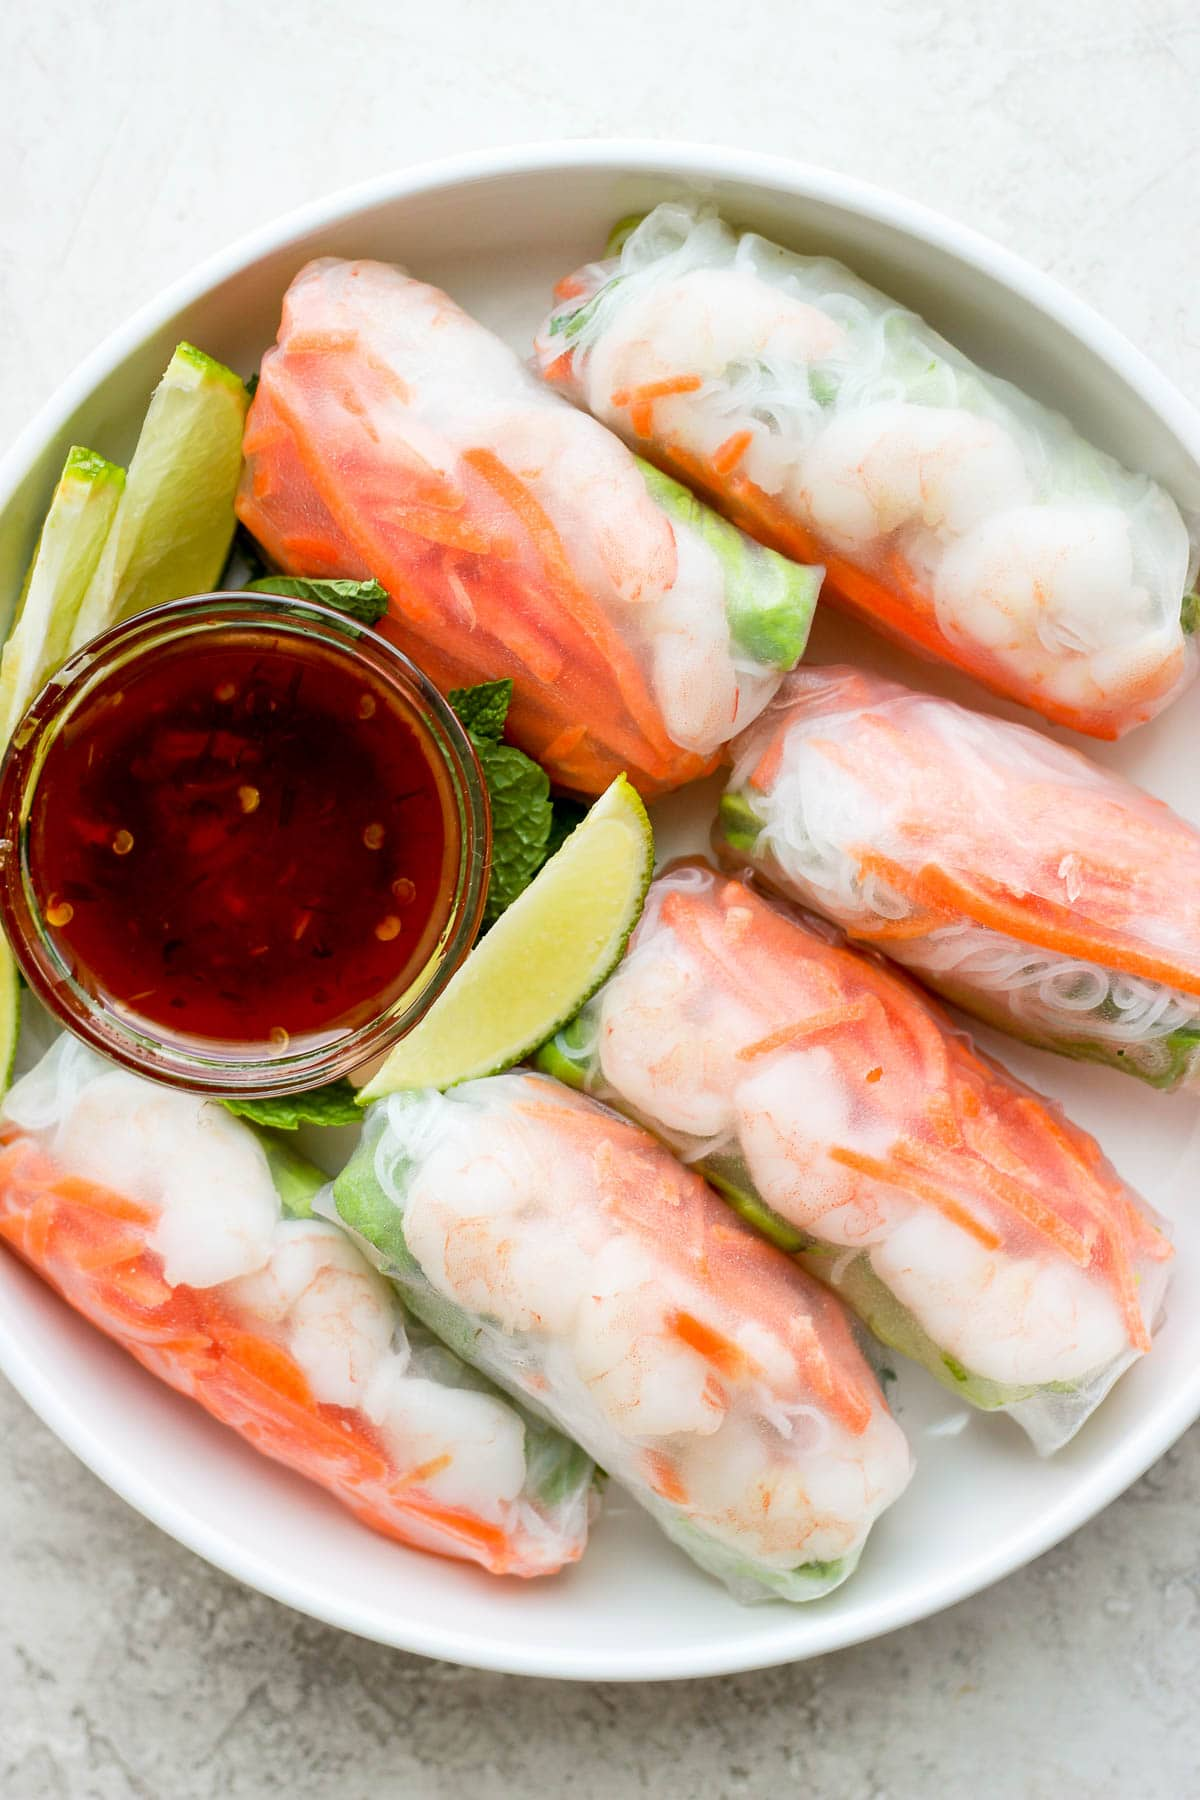 Bowl of shrimp spring rolls with a smaller bowl of dipping sauce and a few lime slices.